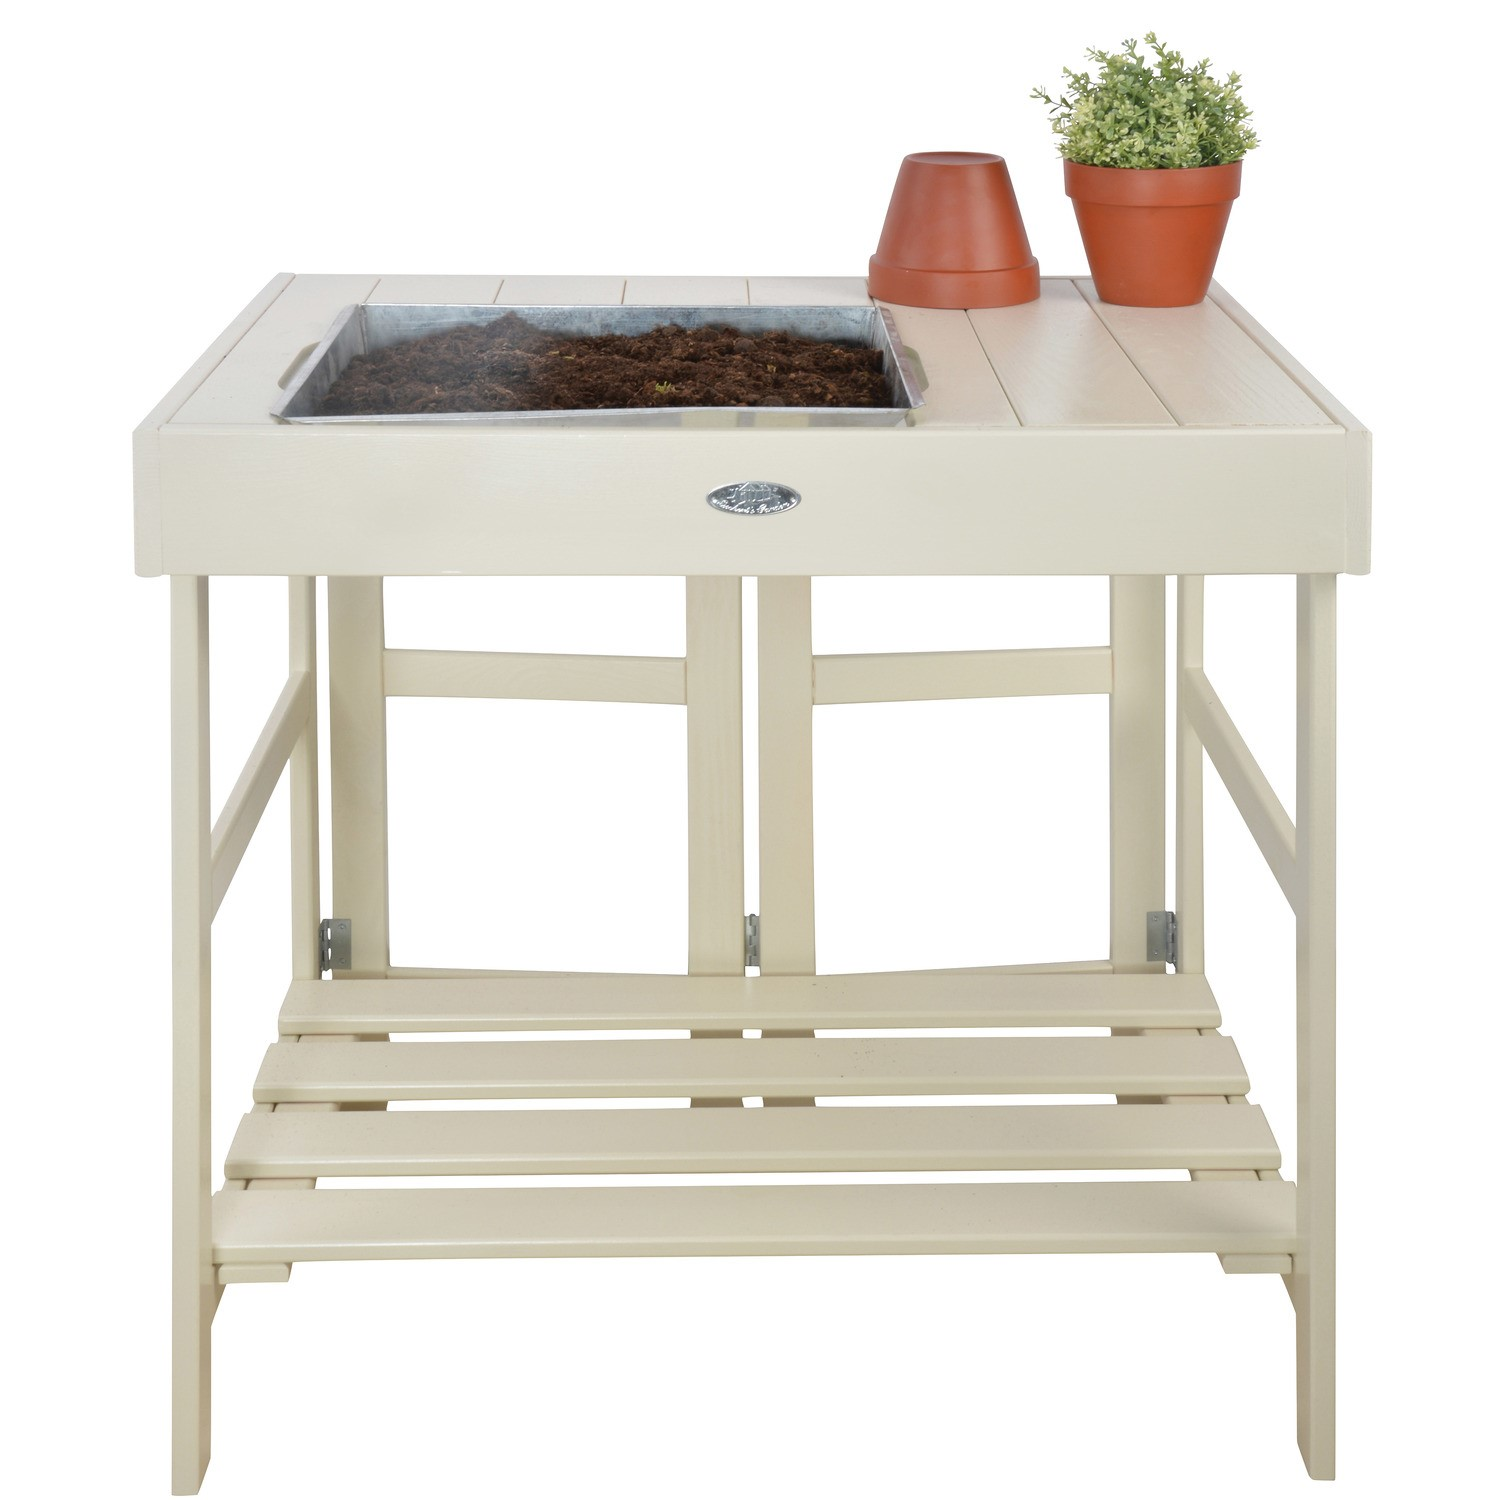 Cream Potting Table With Tray Furniture123